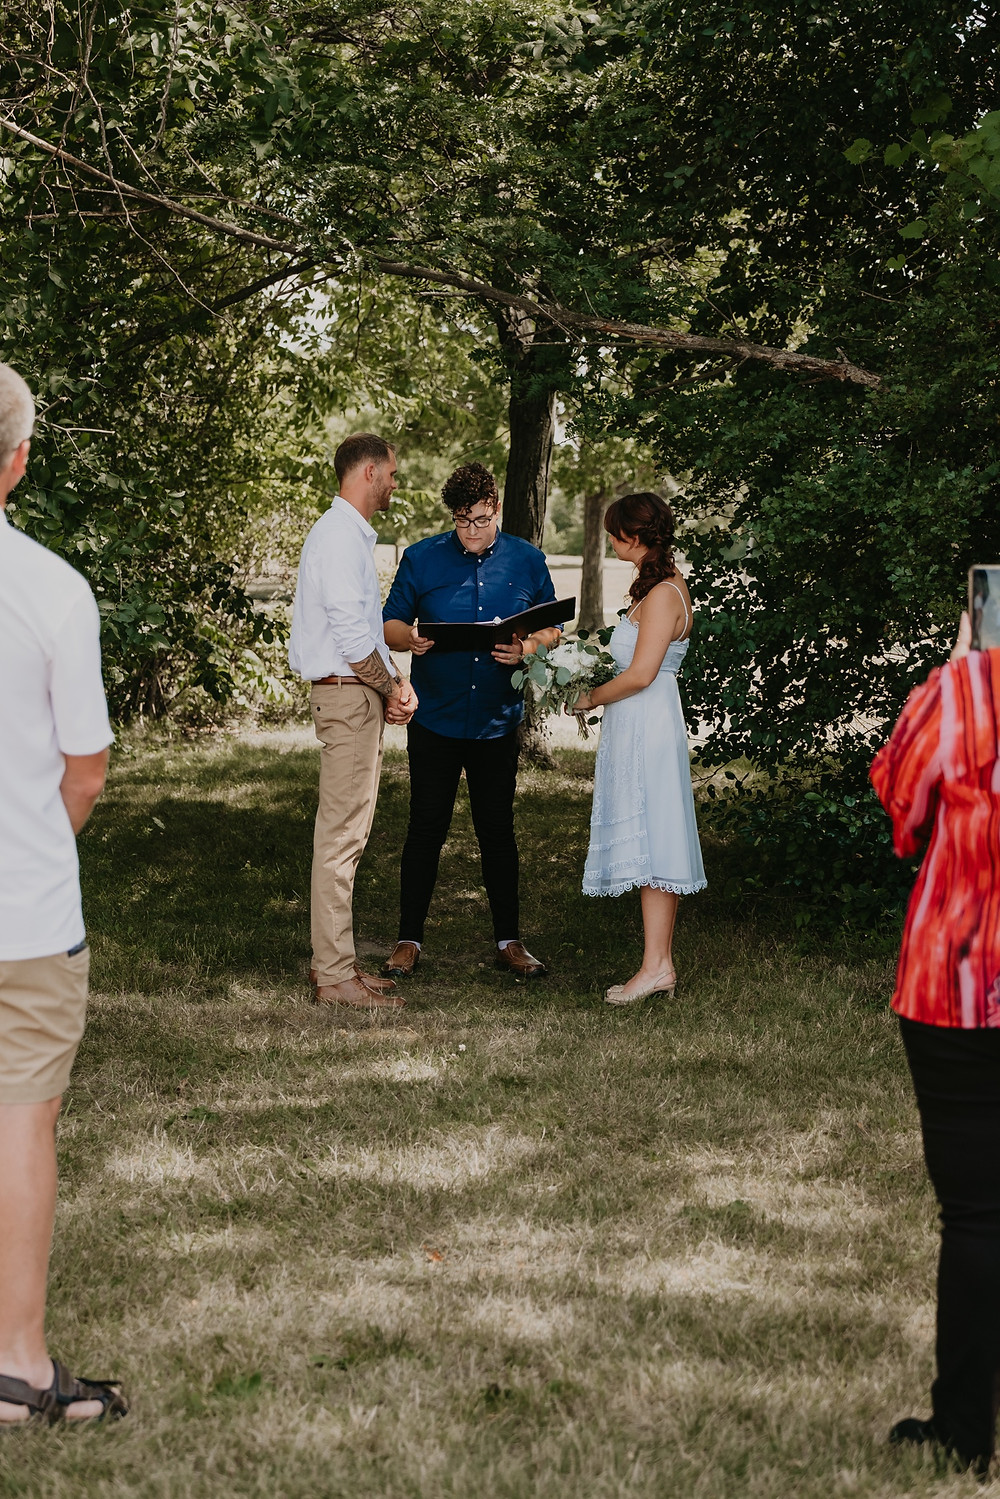 Intimate wedding ceremony with bride and groom at Metro Detroit park. Photographed by Nicole Leanne Photography.